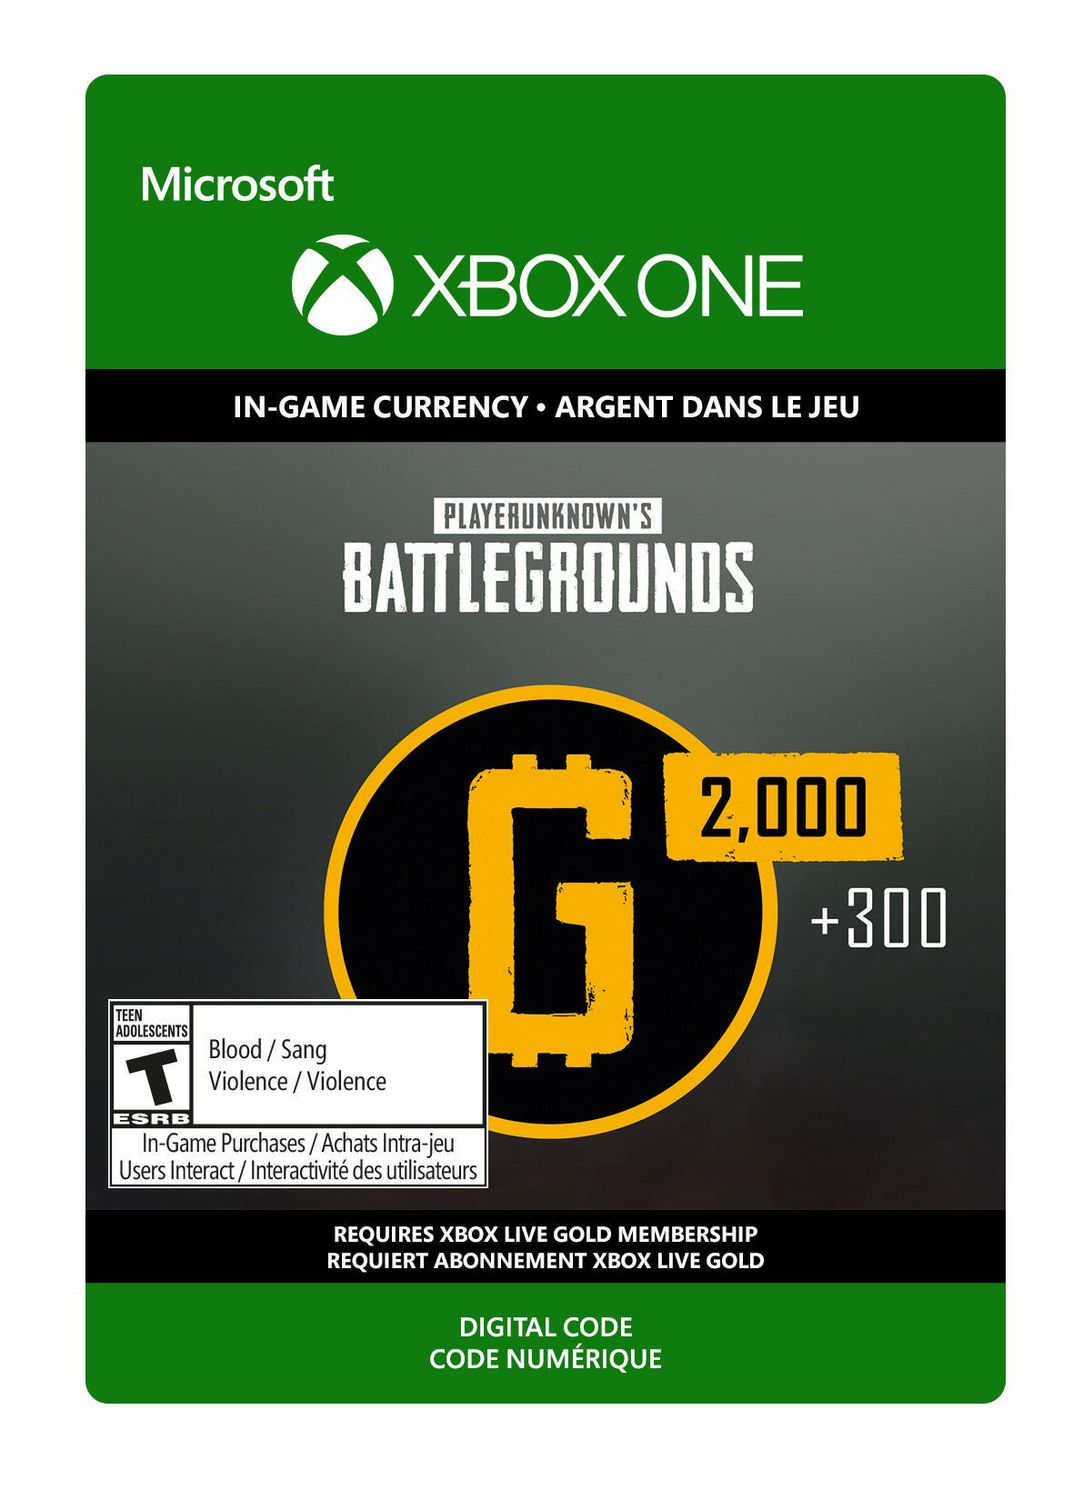 what are the g coins for on xbox